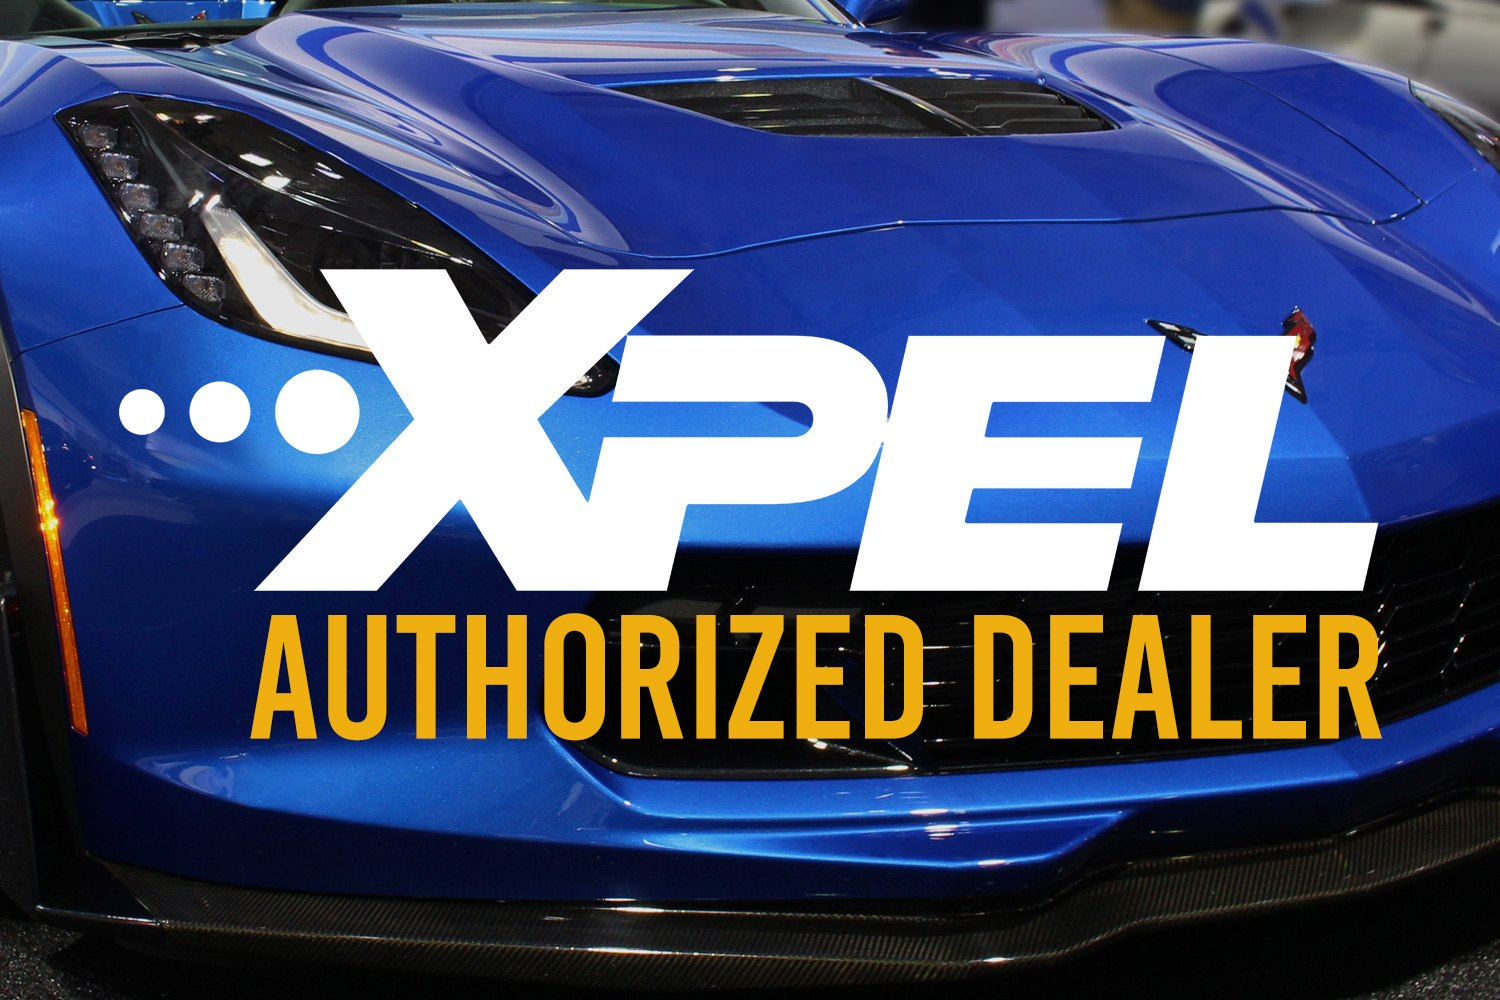 Xpel paint protection film sealant